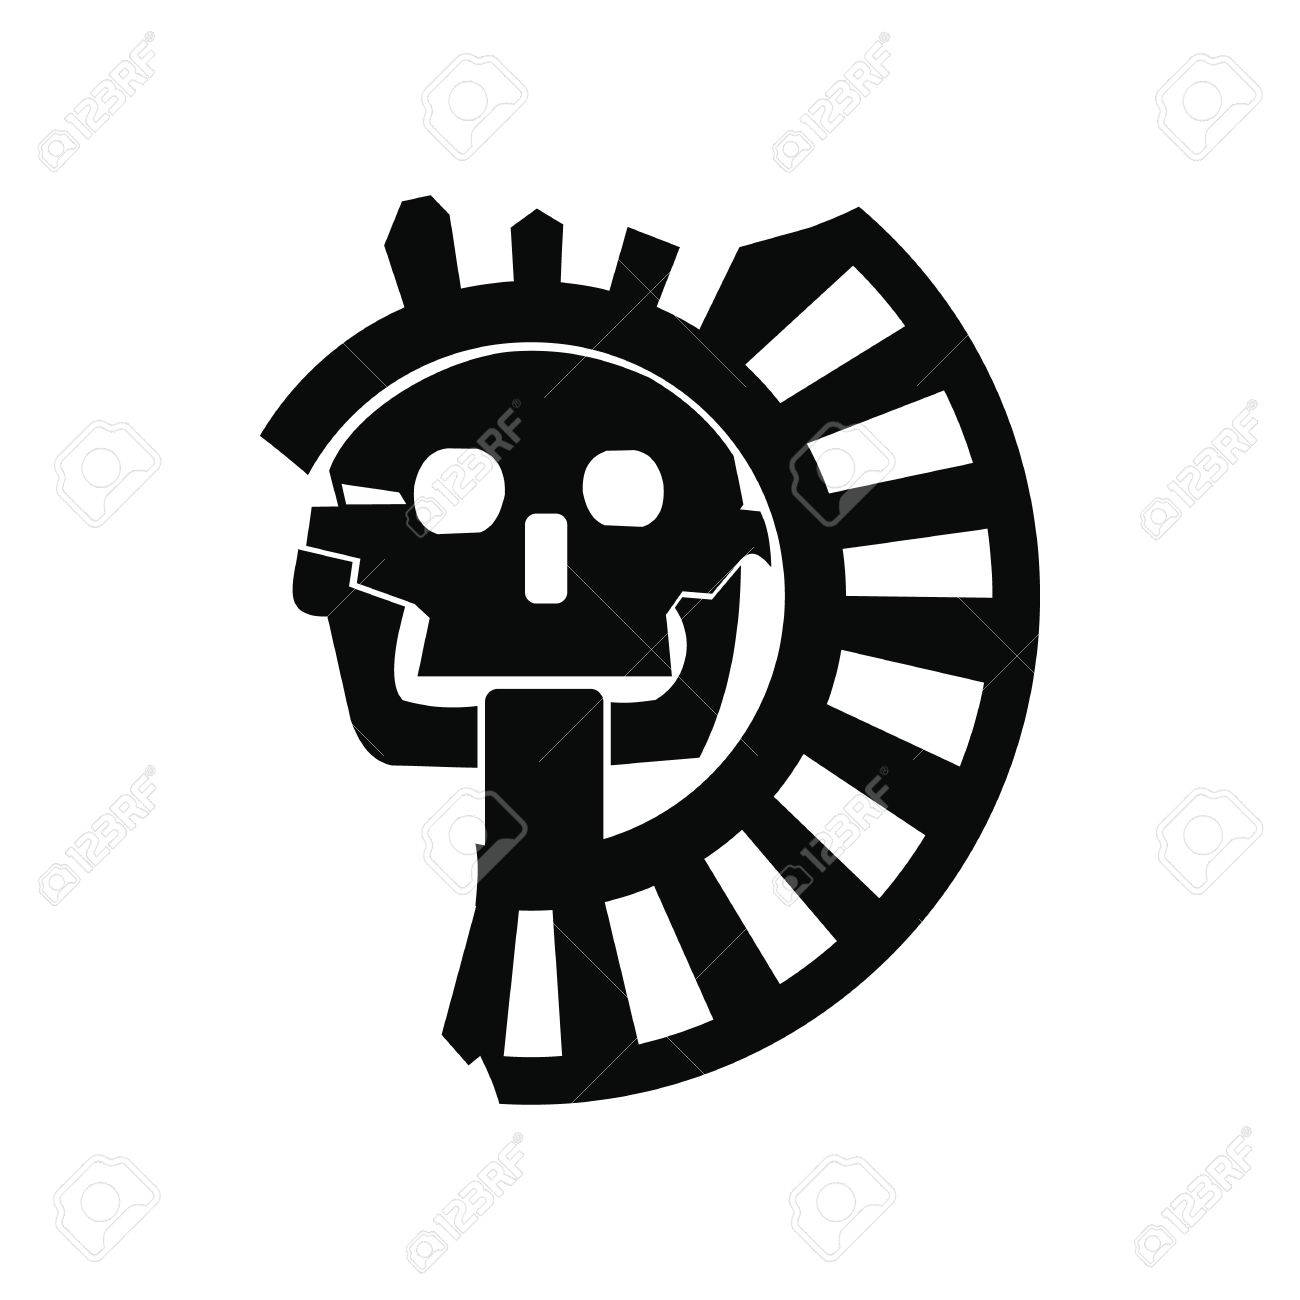 Skull the god of death of aztecs icon in simple style isolated skull the god of death of aztecs icon in simple style isolated on white background stock biocorpaavc Images